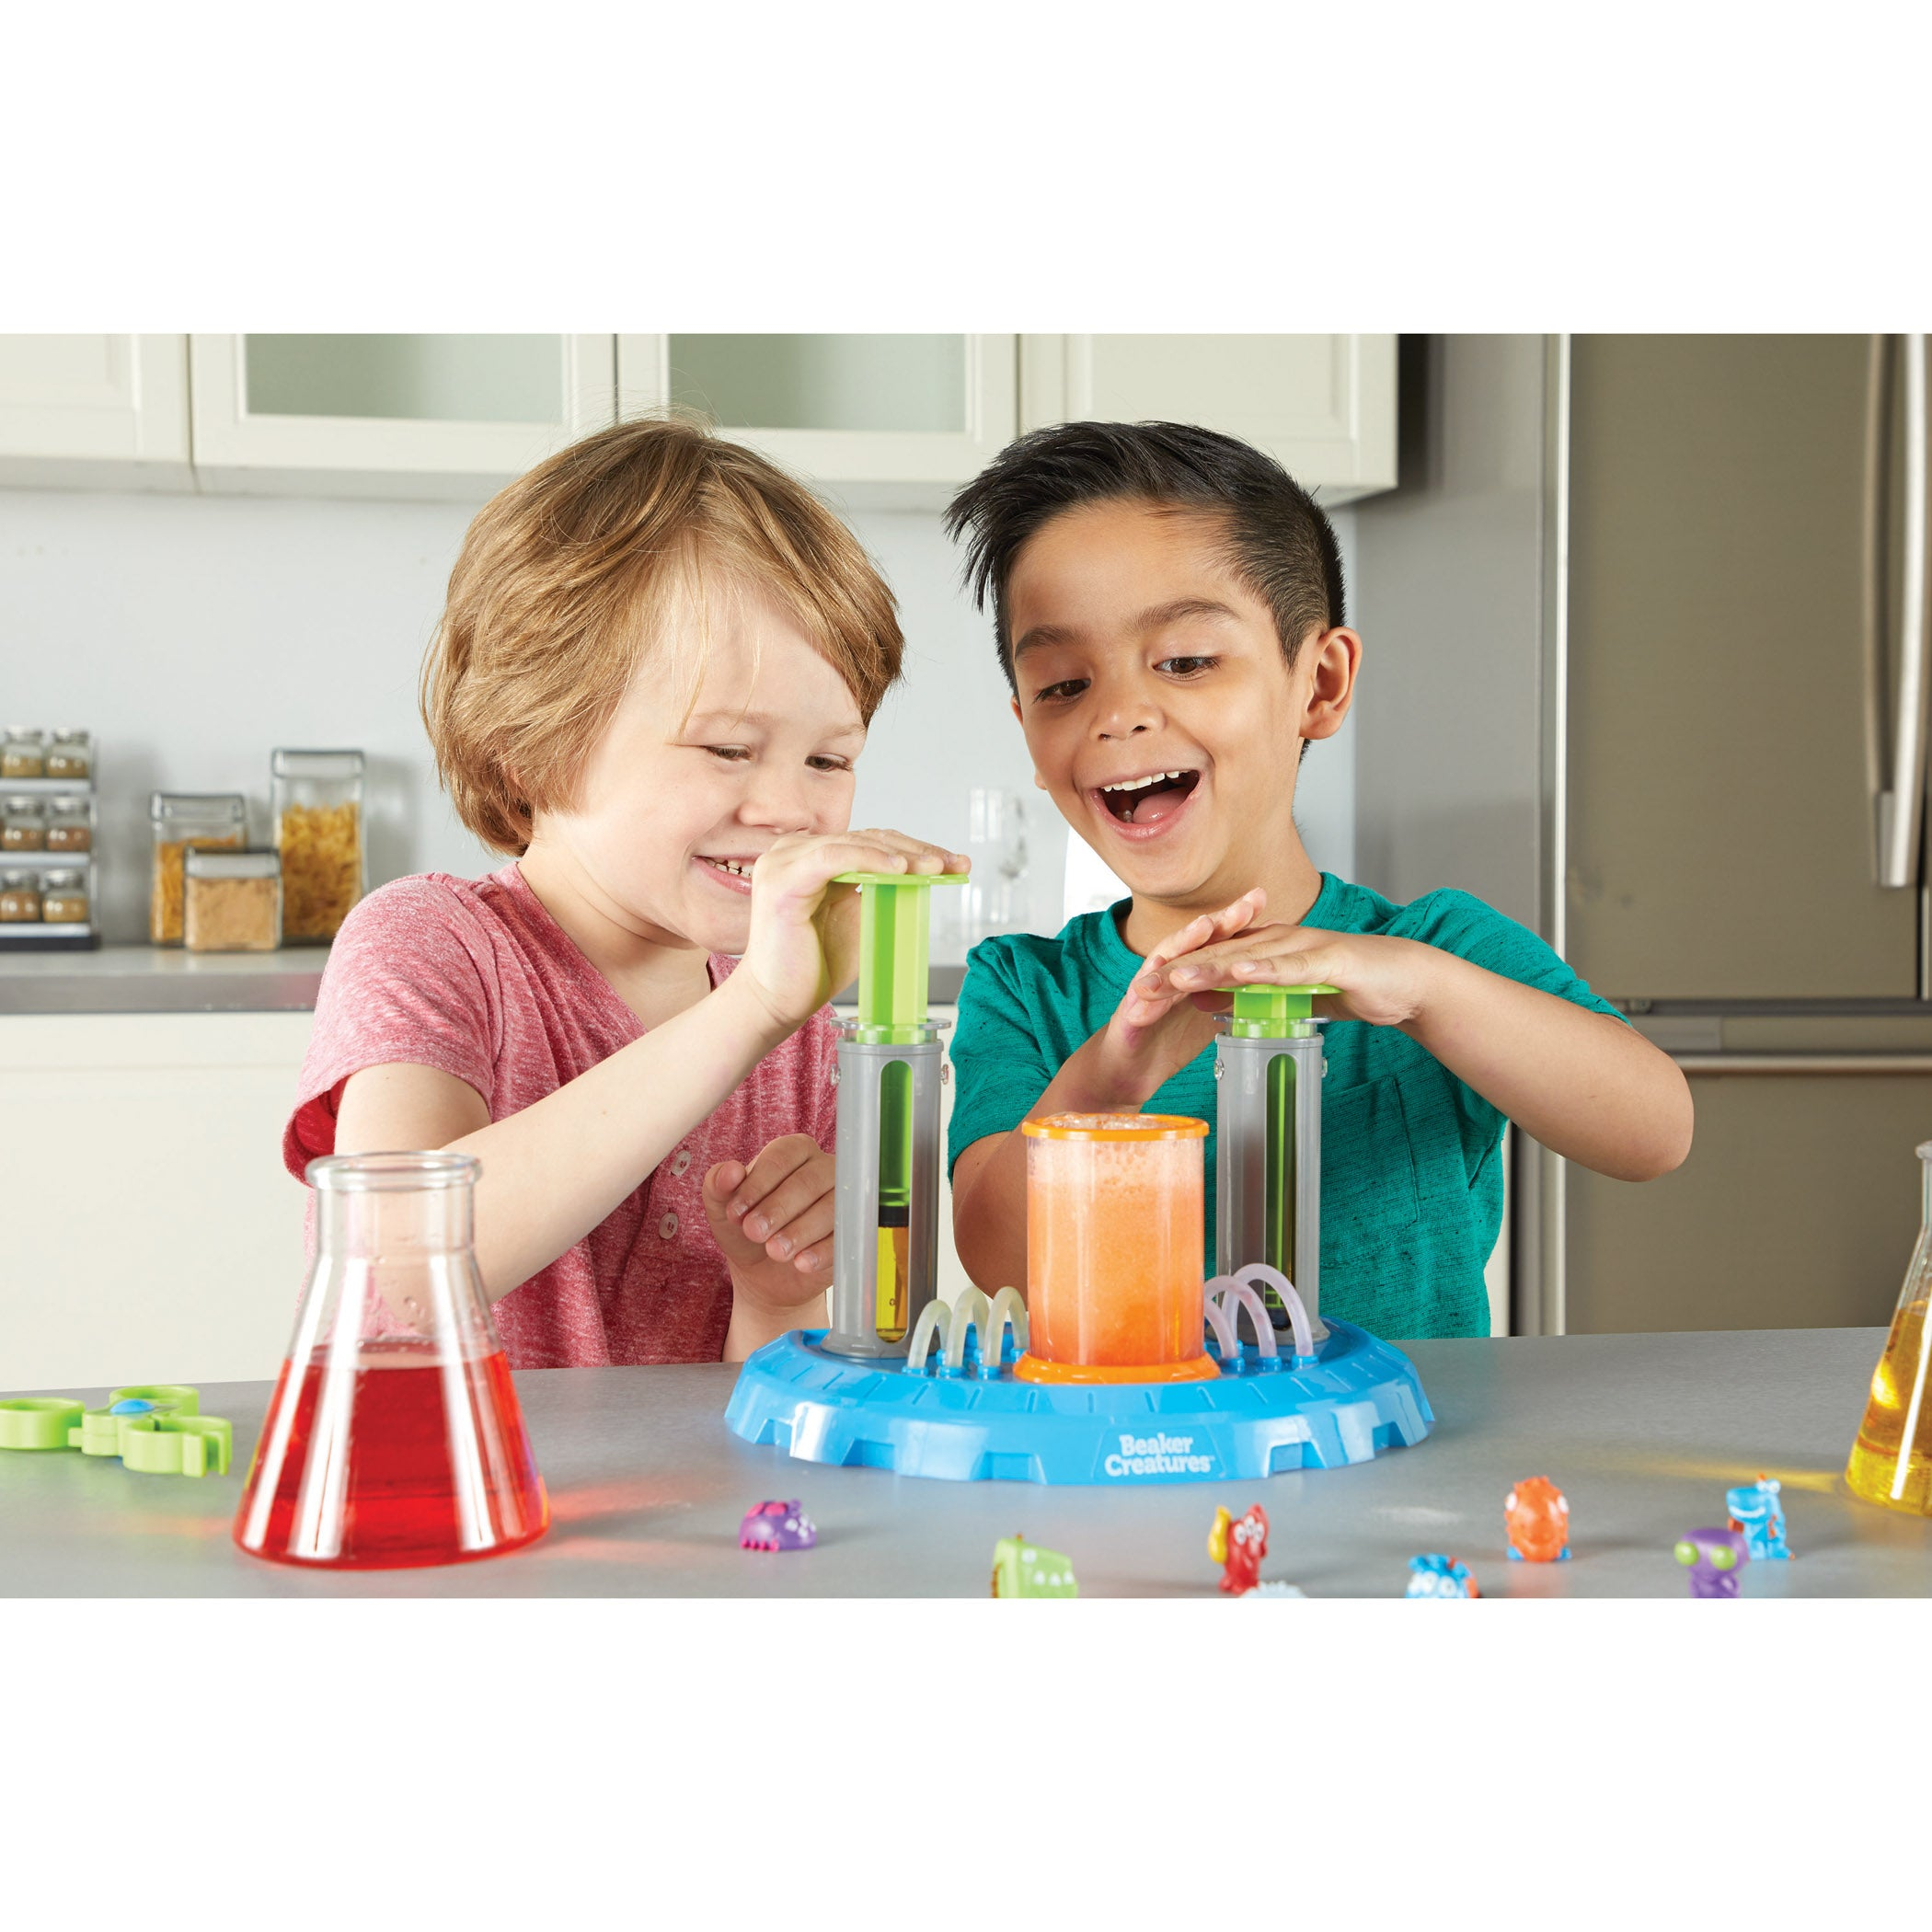 Beaker Creatures Liquid Reactor Super Lab - Kiddren